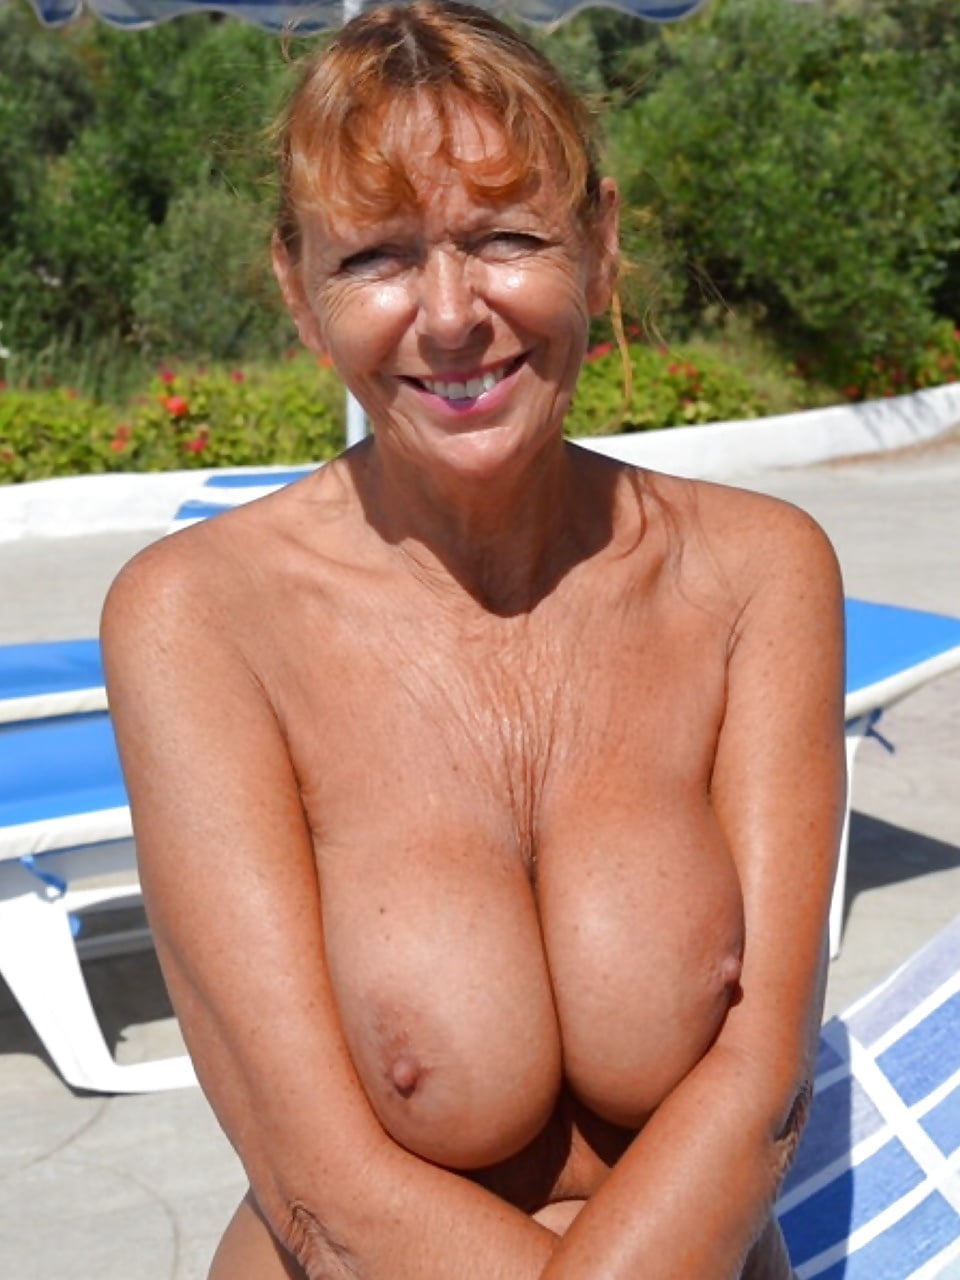 topless-granny-pictures-tumblr-just-naked-missionary-sex